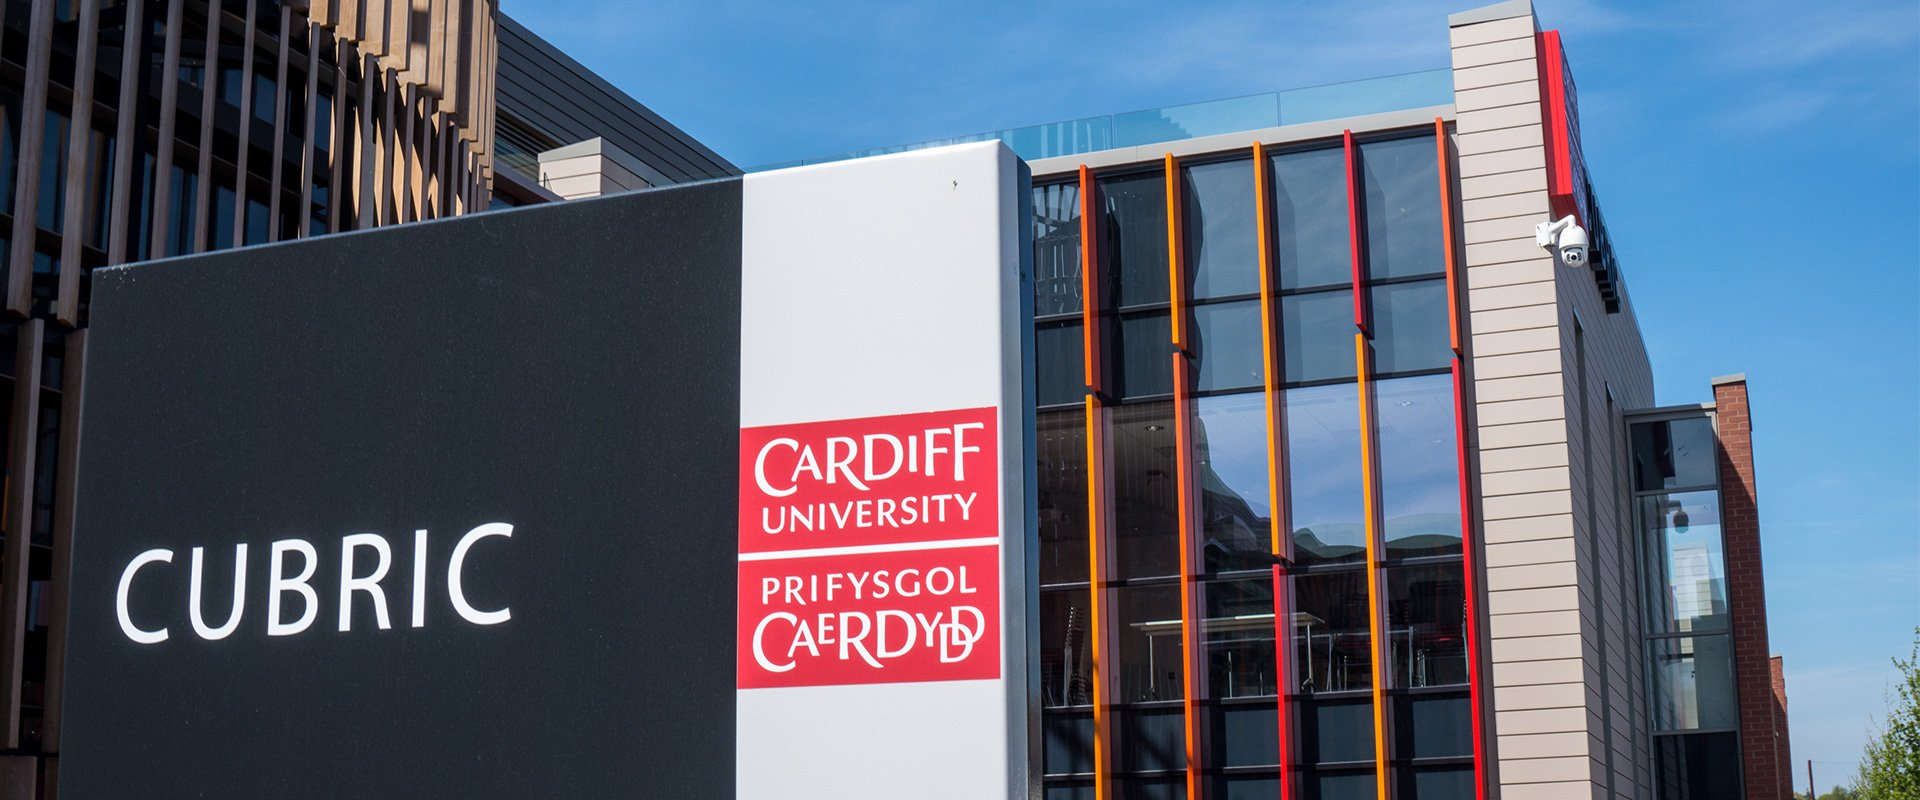 Cardiff University signage logo graphics